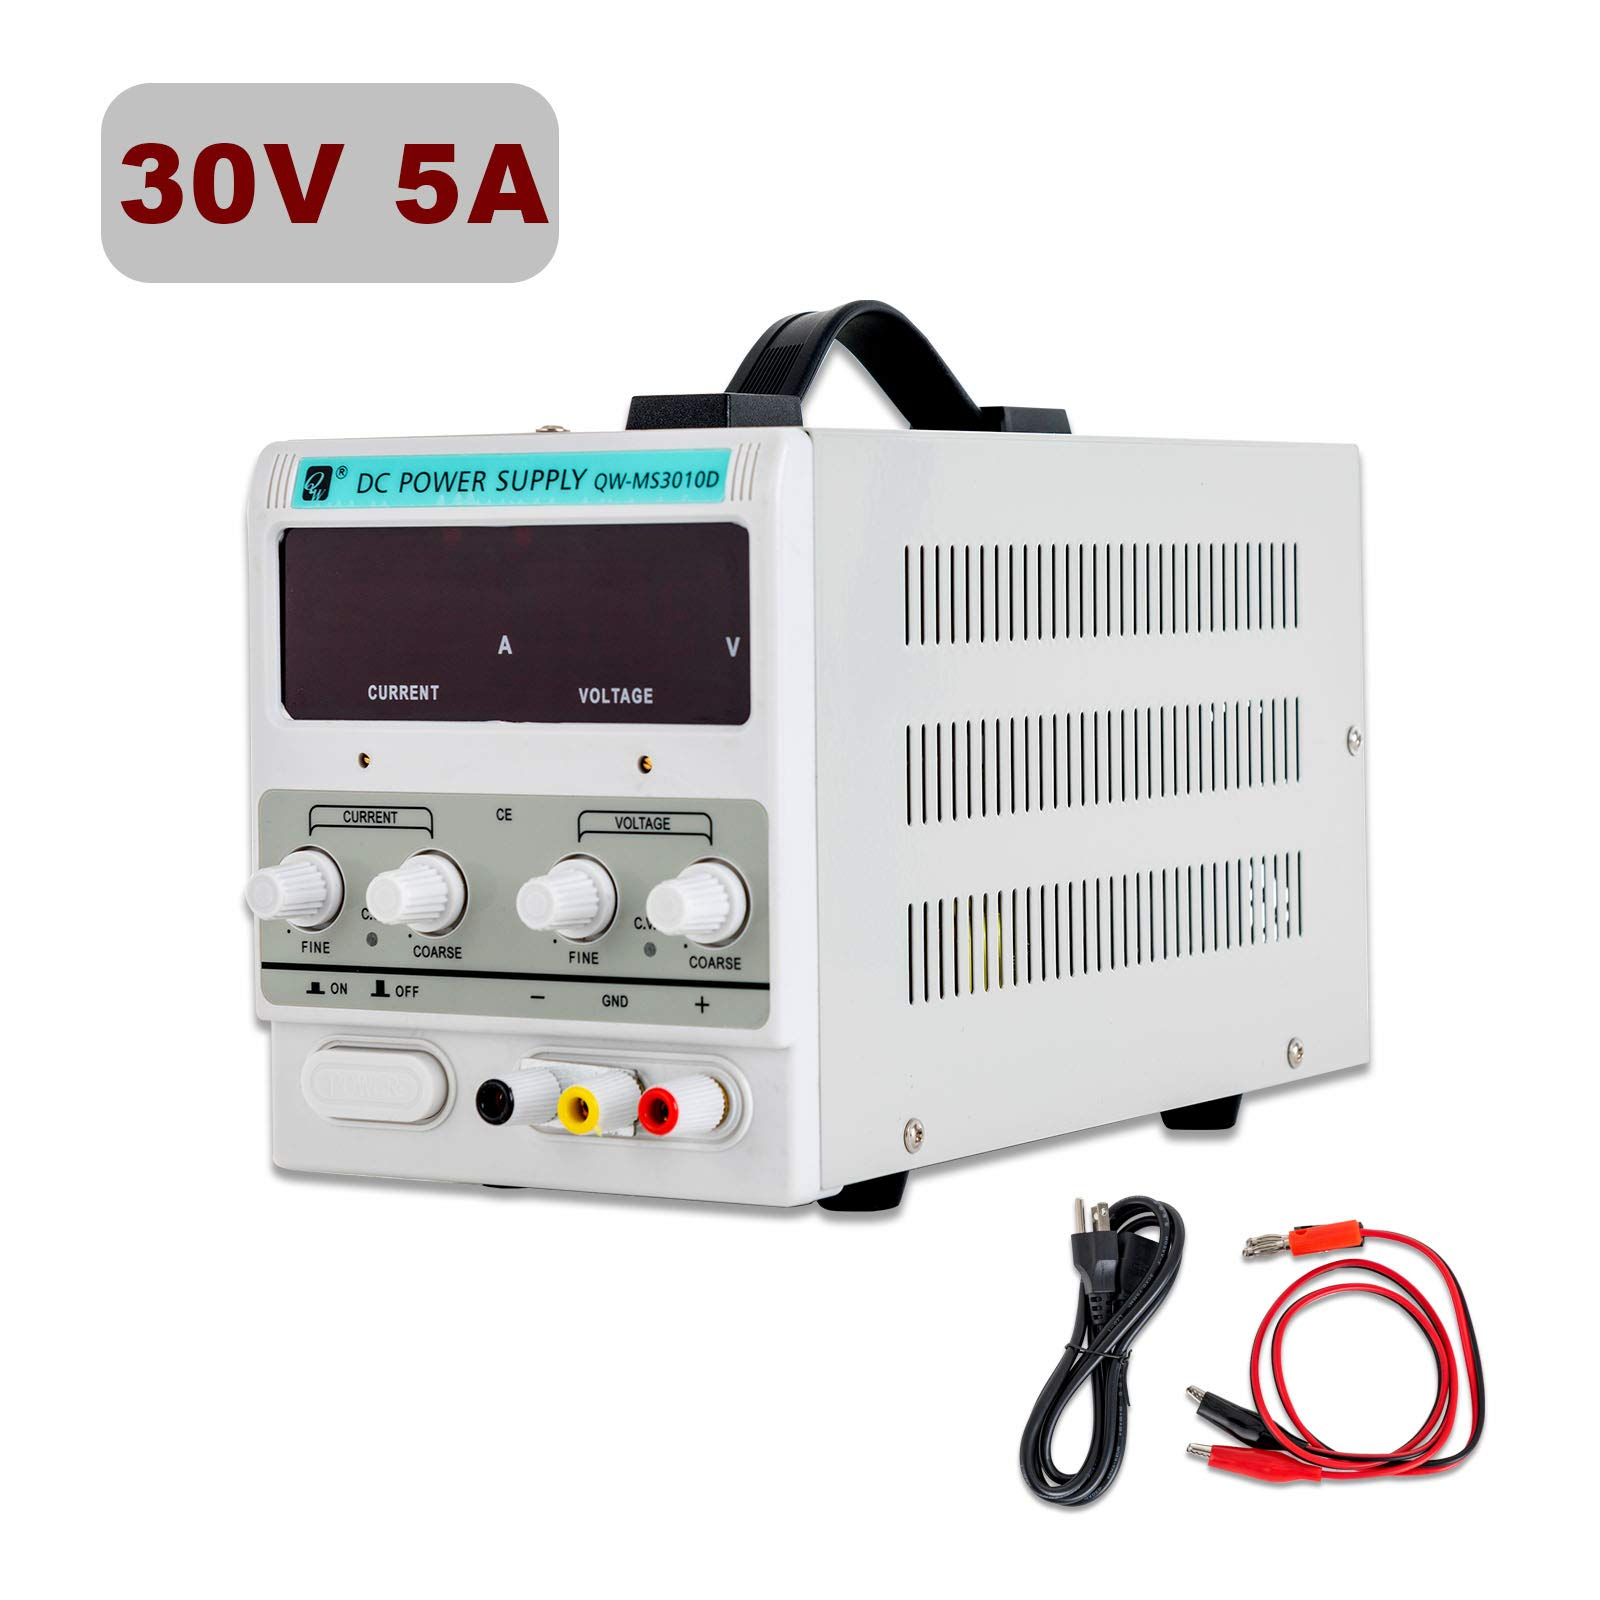 SUNCOO Variable DC Power Supply 30V 5A Adjustable Regulated Lab Bench Power Supply with Digital LED Display Alligator Clip Cable, US Standard Cord by SUNCOO (Image #1)